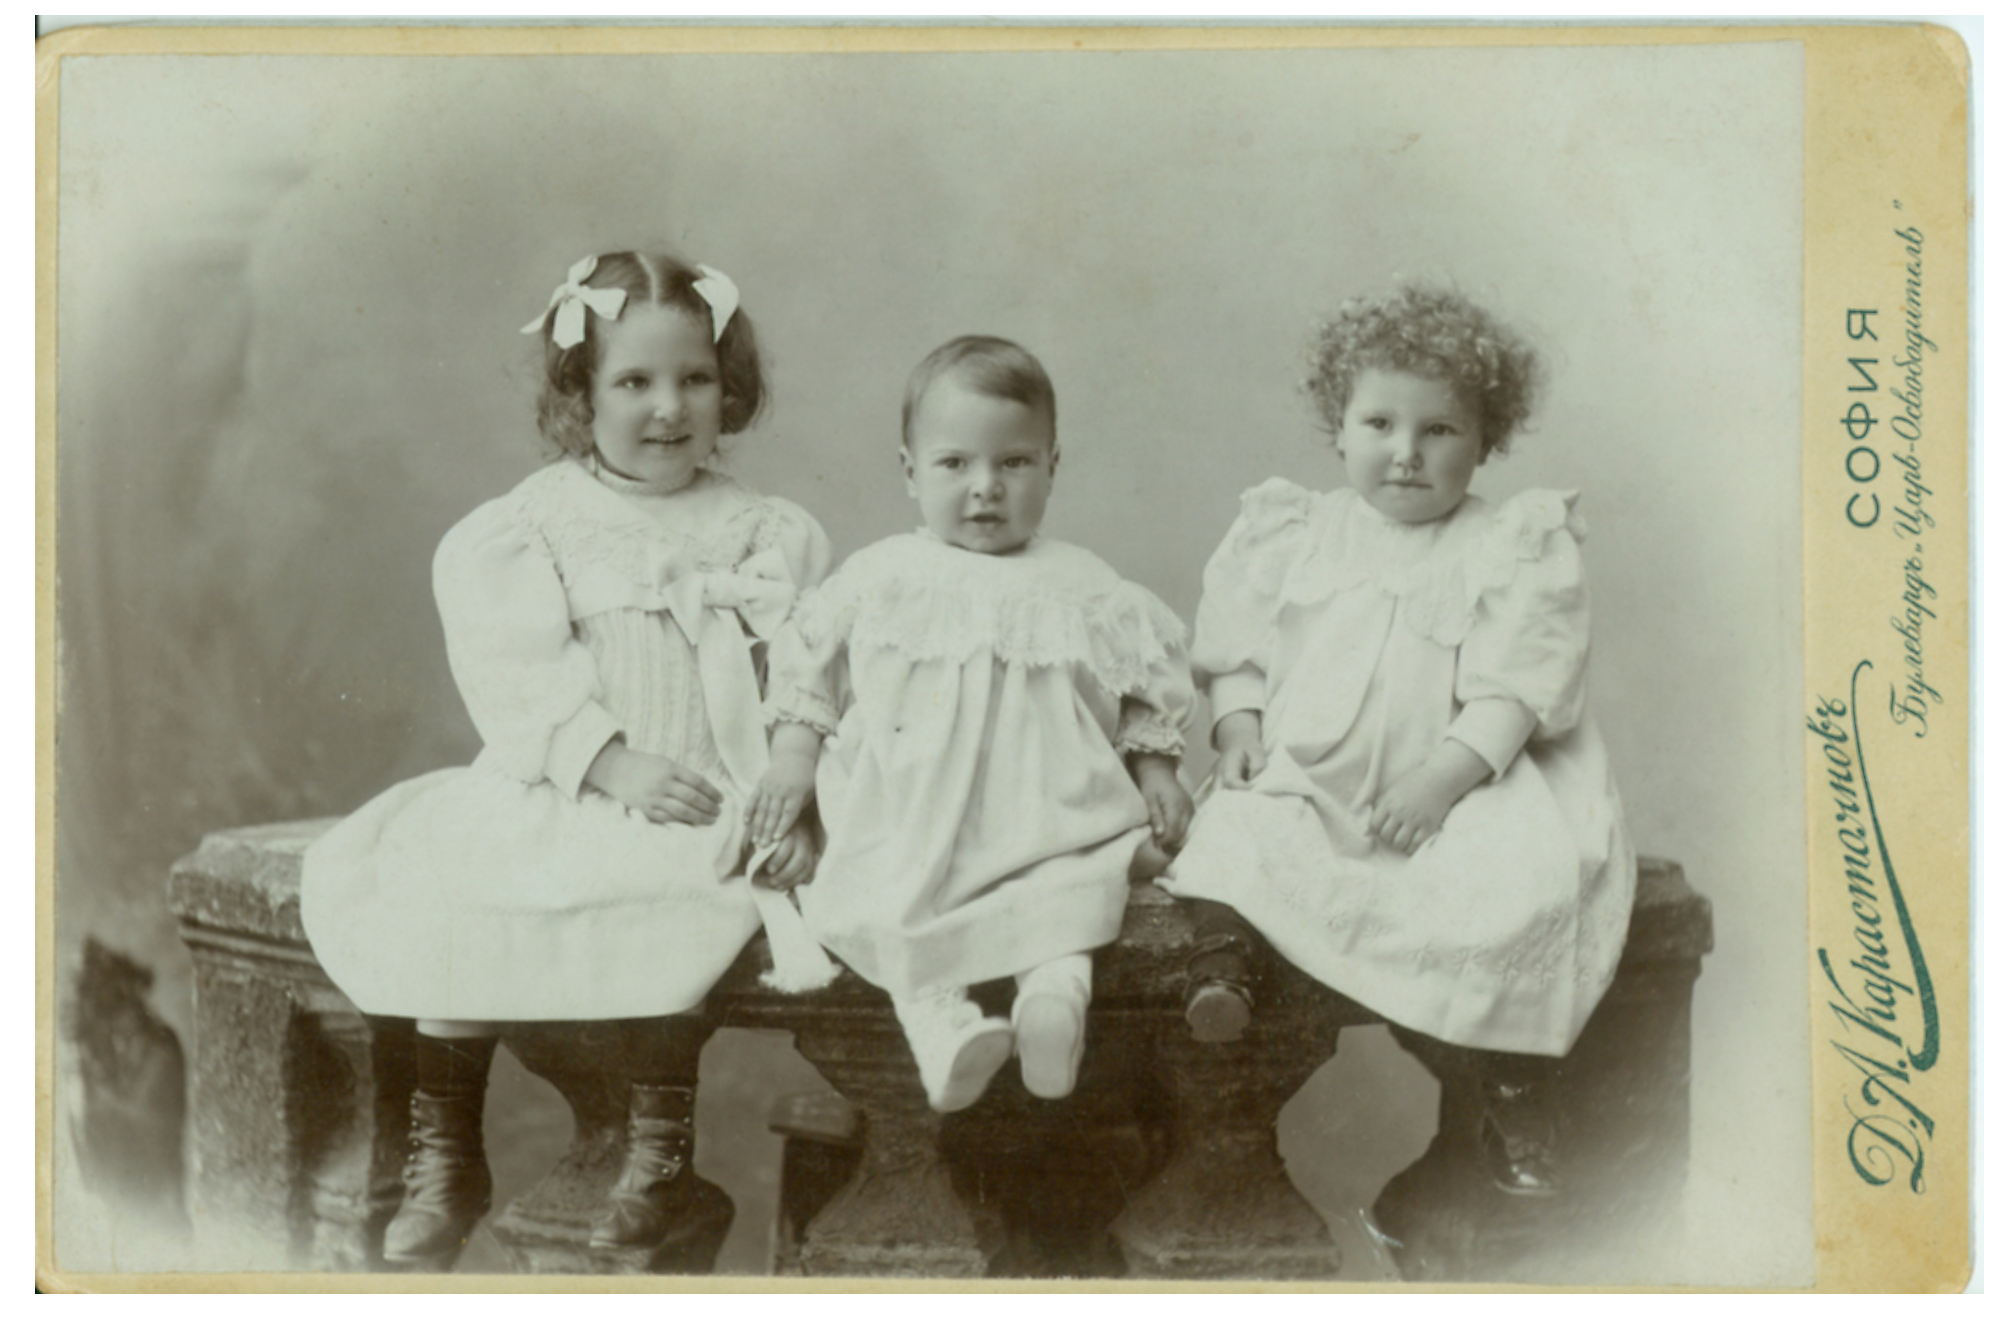 Studio portrait of the Kalchevi siblings, © Bilyana Braykova Karastoyanova